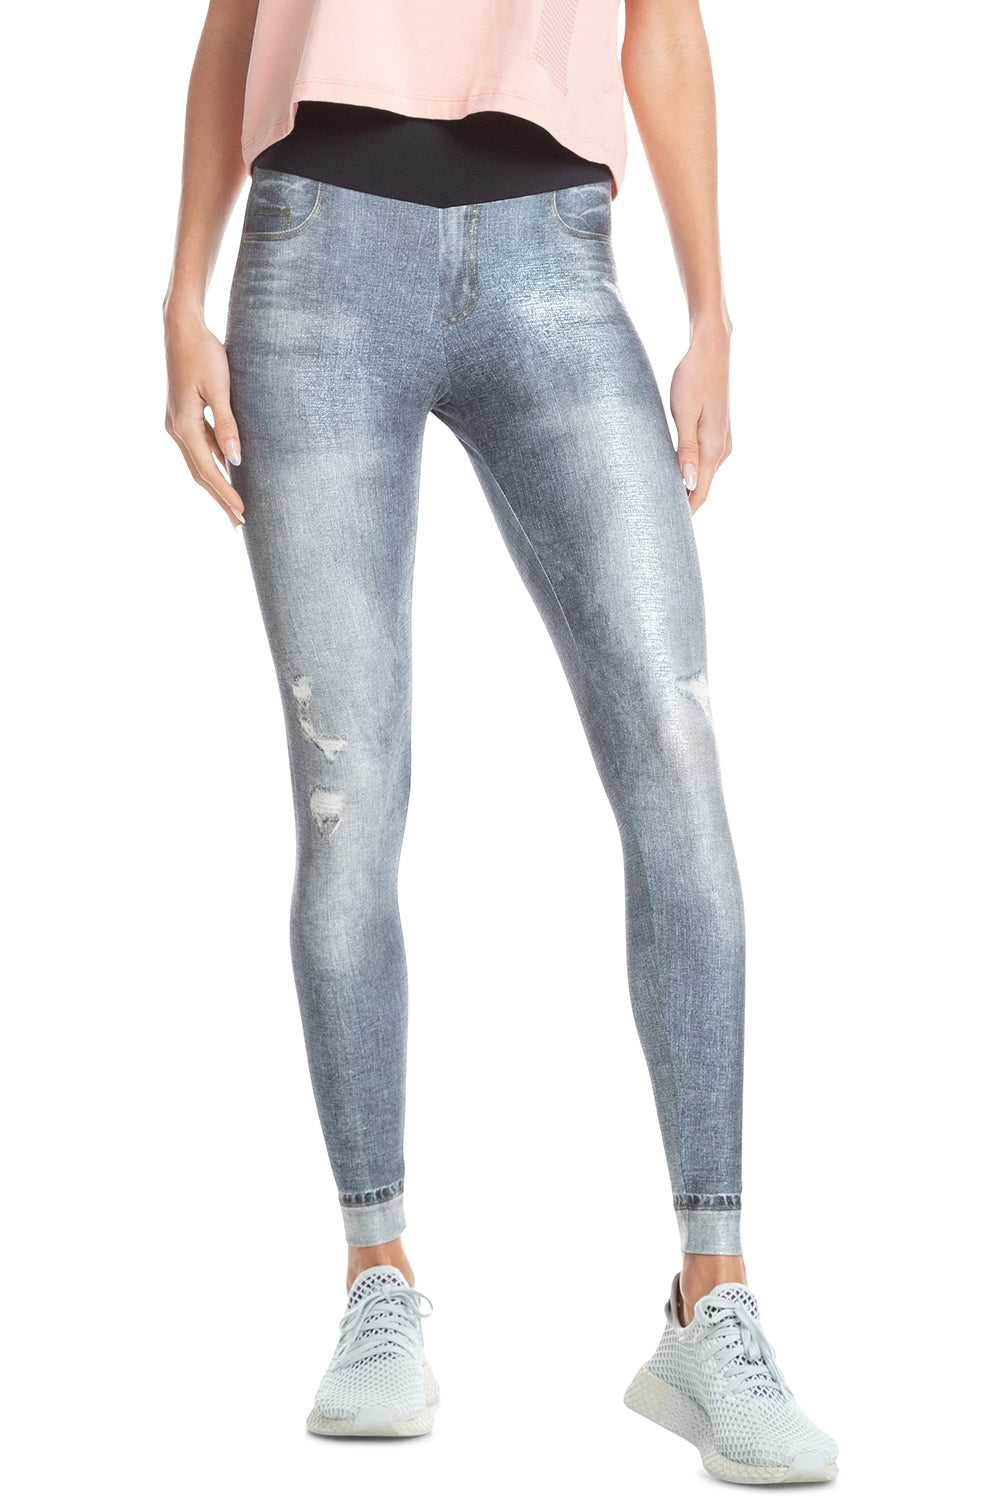 Everyday Style Denim Tight 1